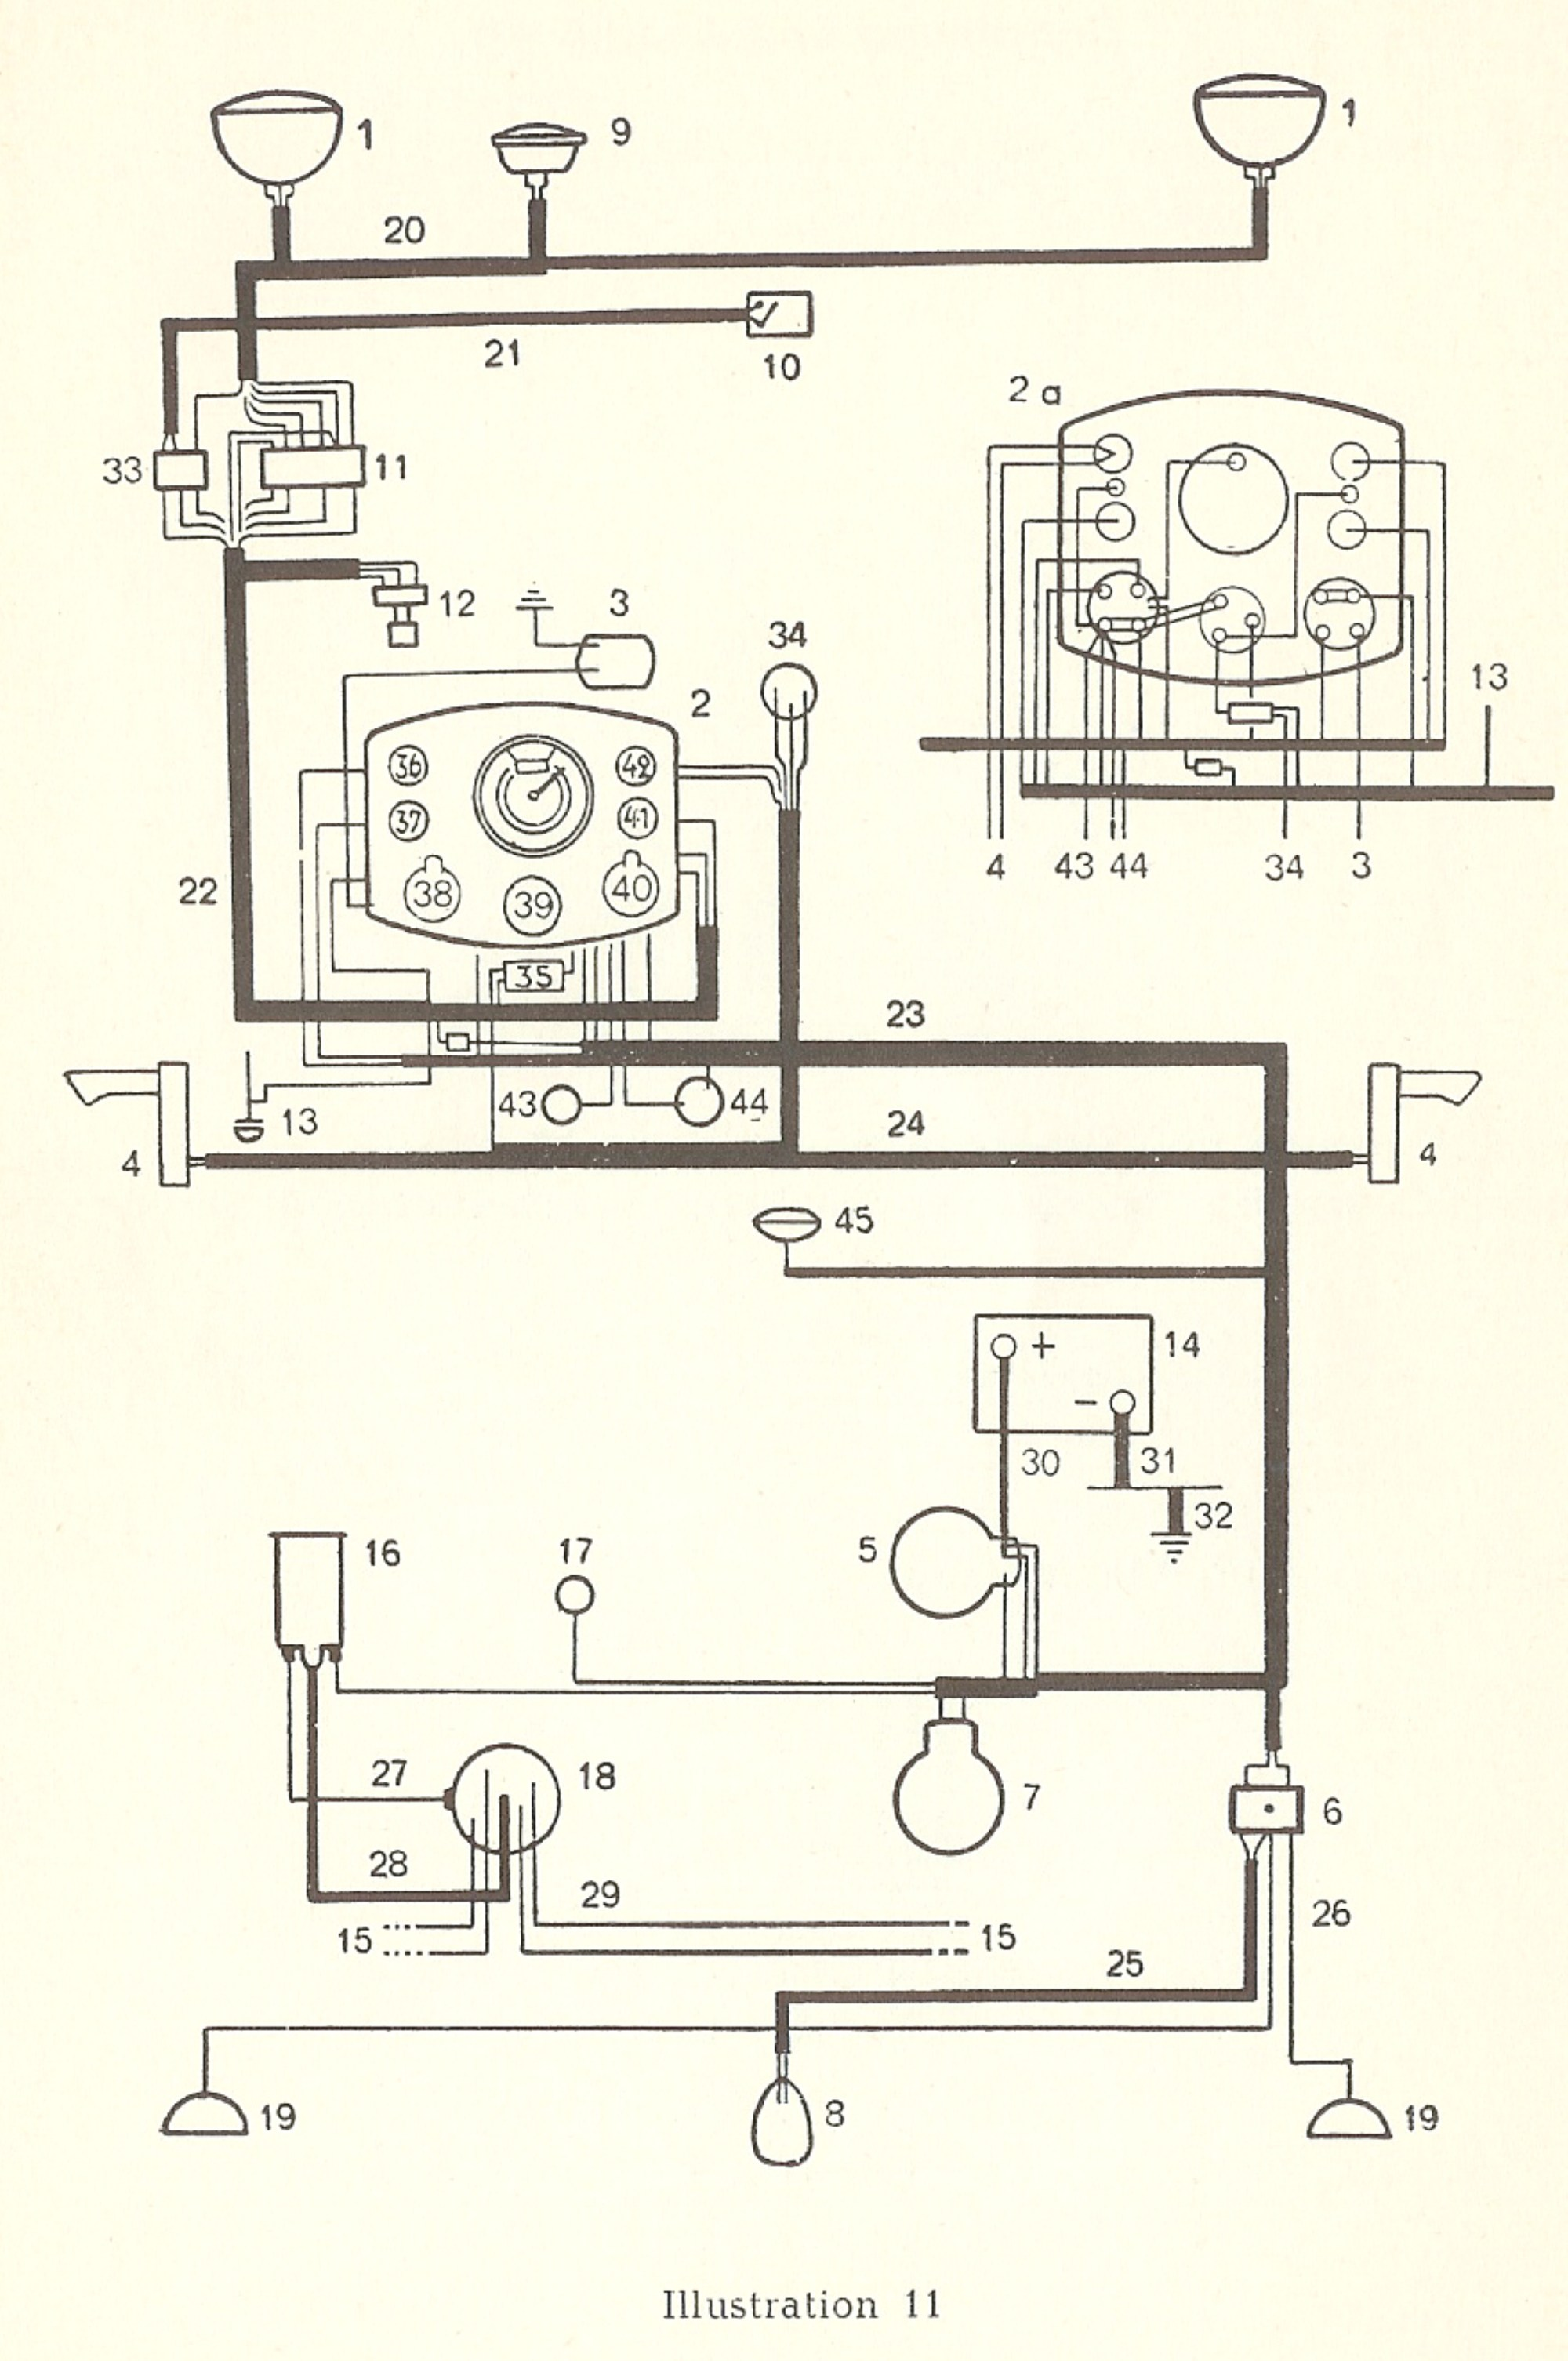 hight resolution of 1968 vw fuse diagram wiring diagram1968 vw bug fuse diagram electrical wiring diagram1968 vw bug fuse